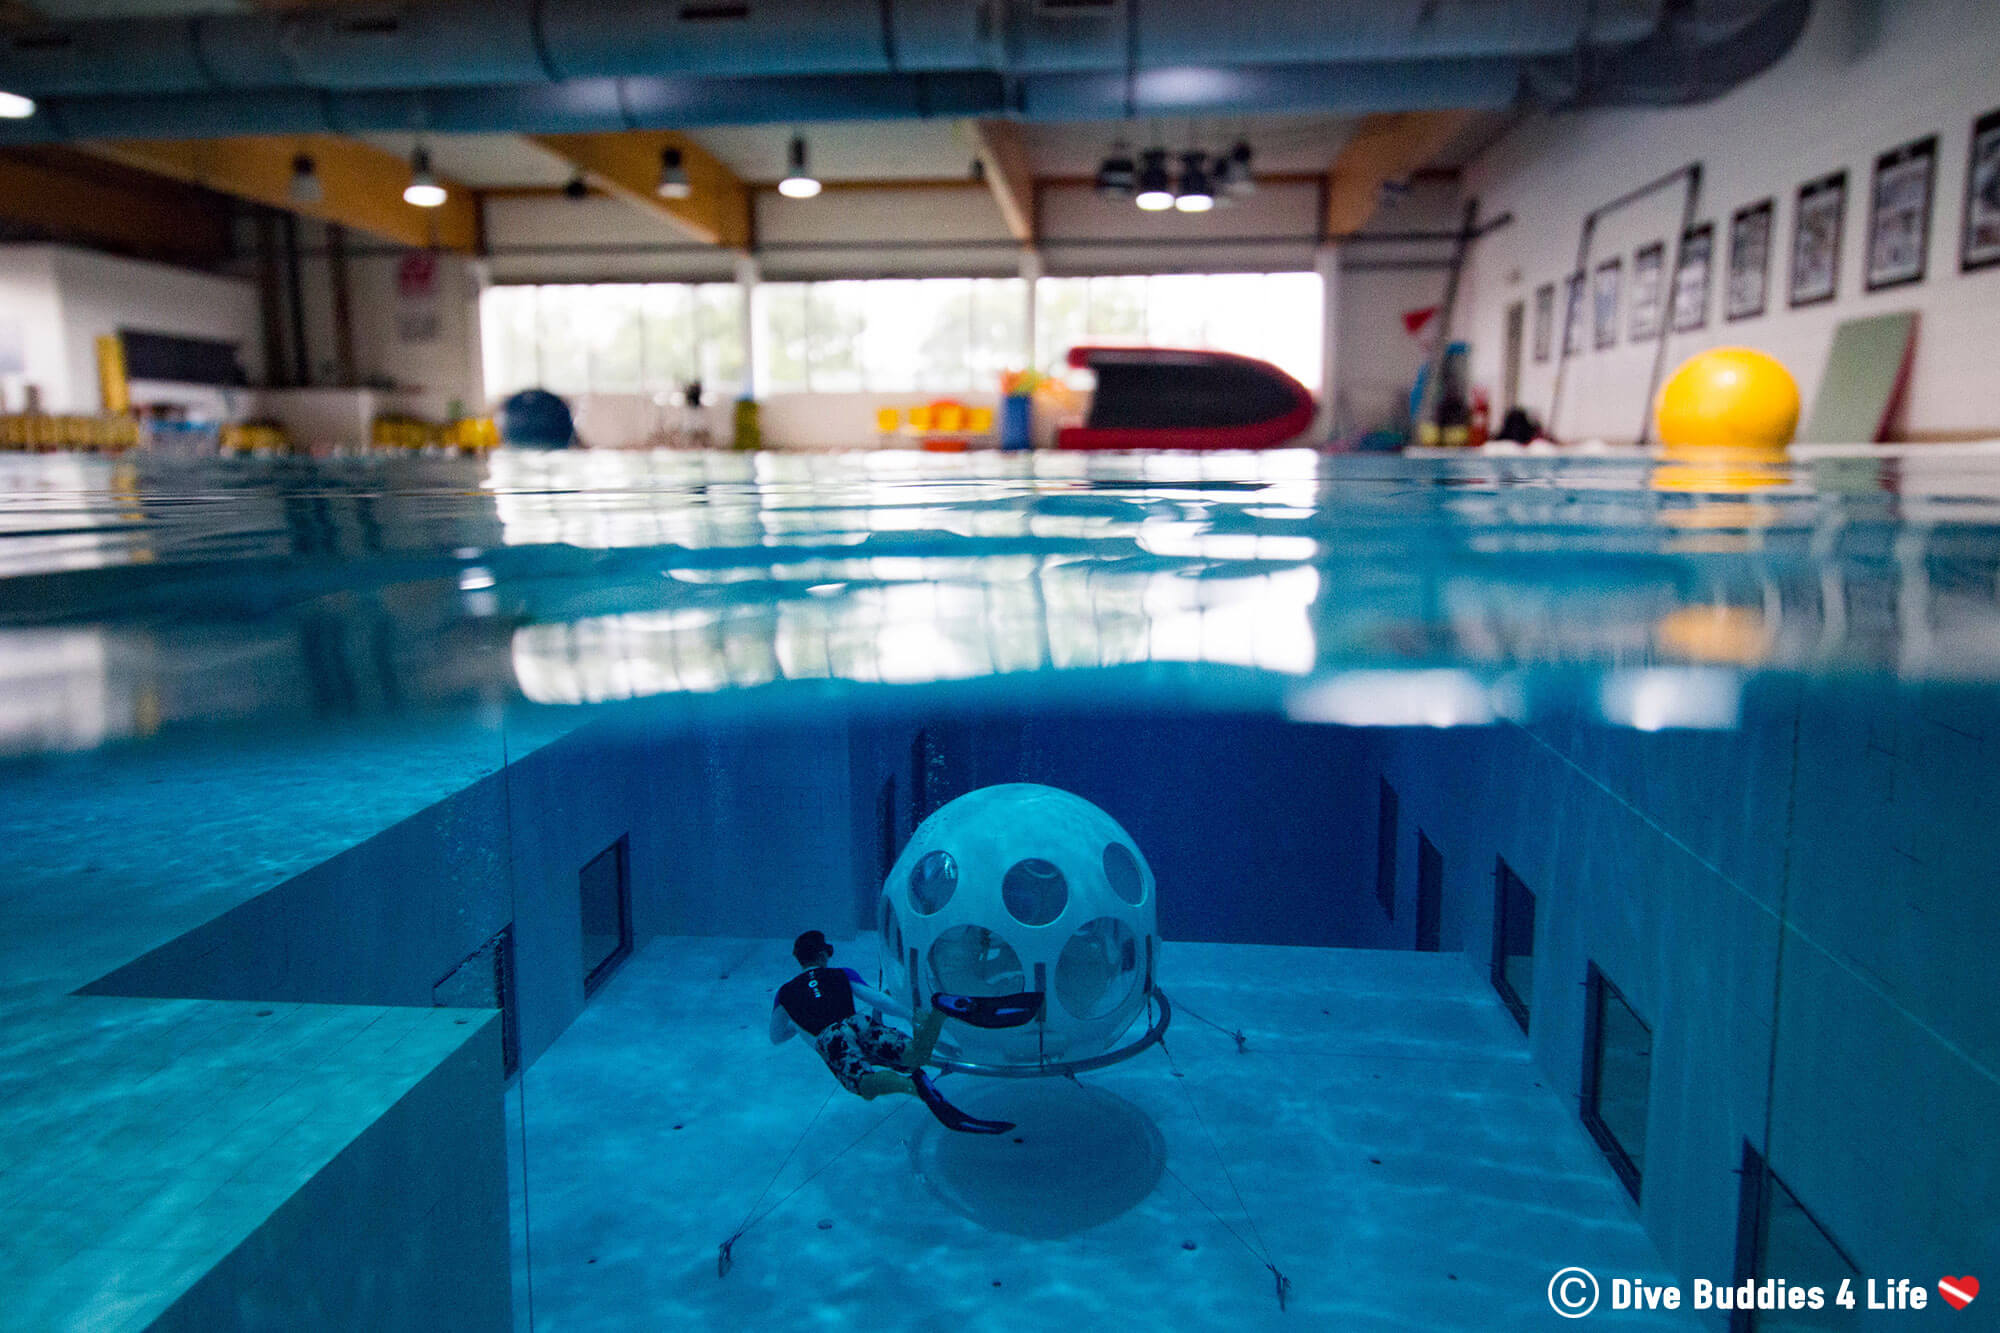 Joey Free Diving Into The Depths Of The Nemo 33 Second Deepest Indoor Pool In The World, Belgium, Europe